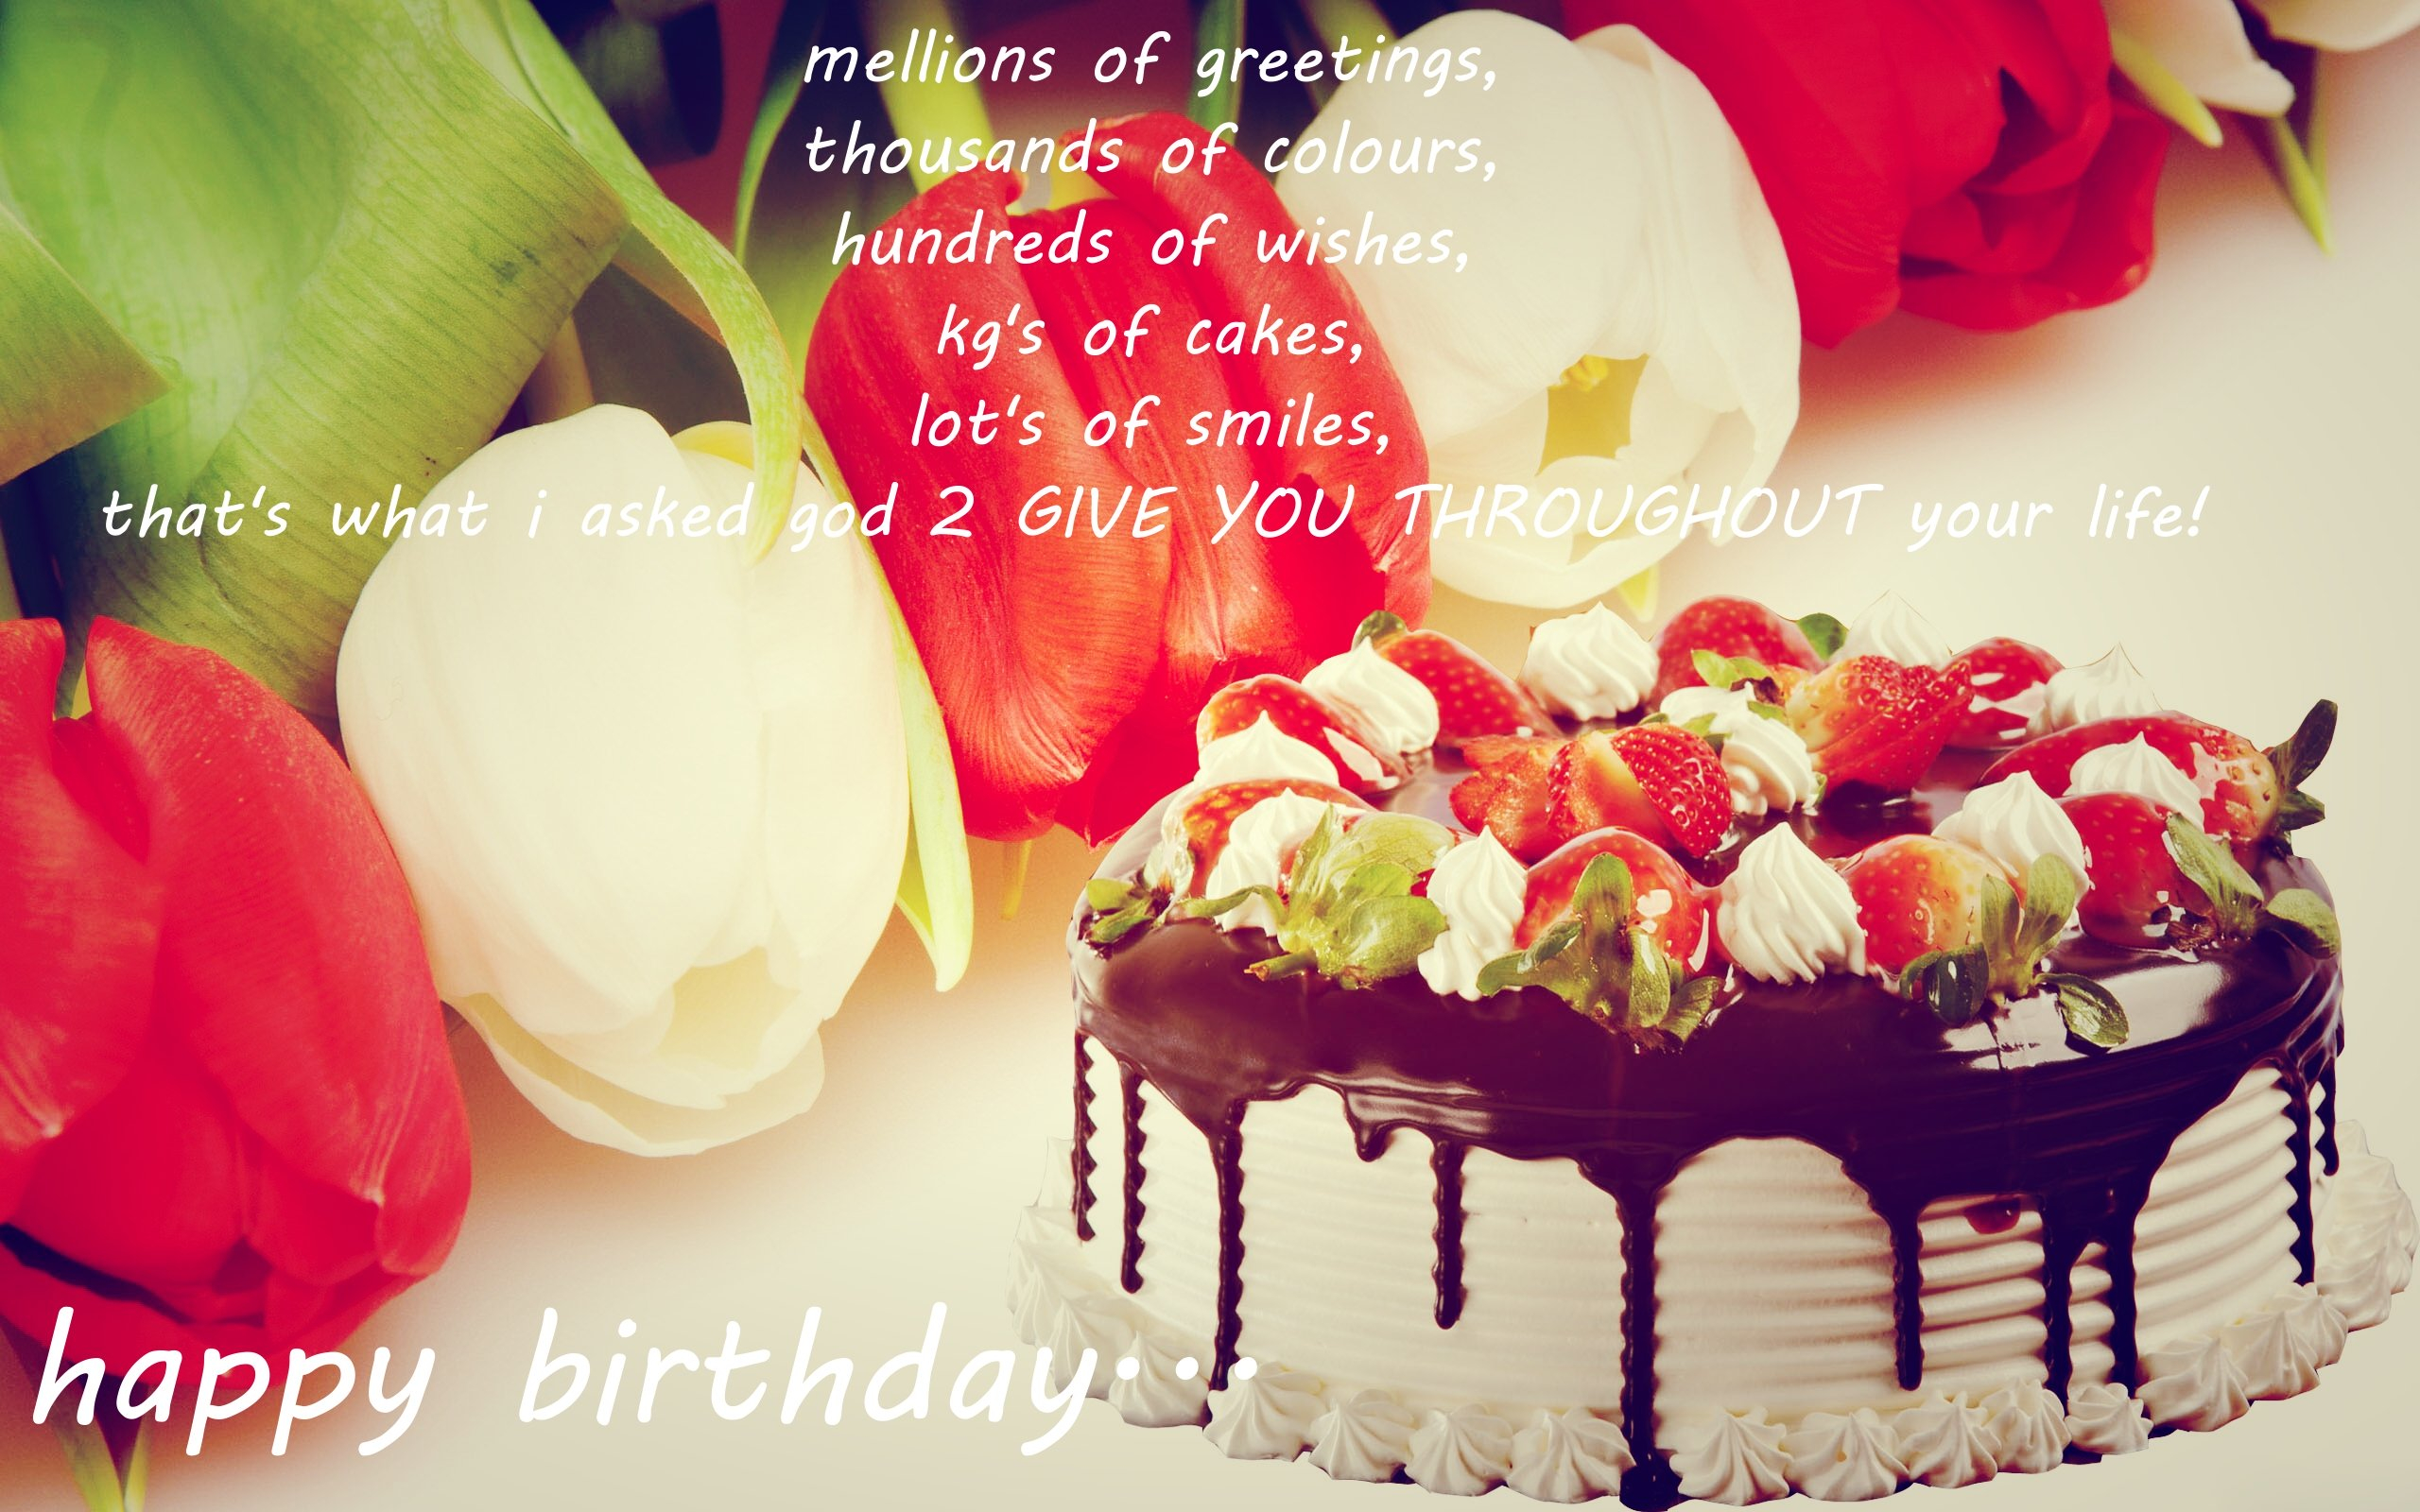 2560 X 1600 In 34 Great Photo Of Happy Birthday Cake And Flowers Images